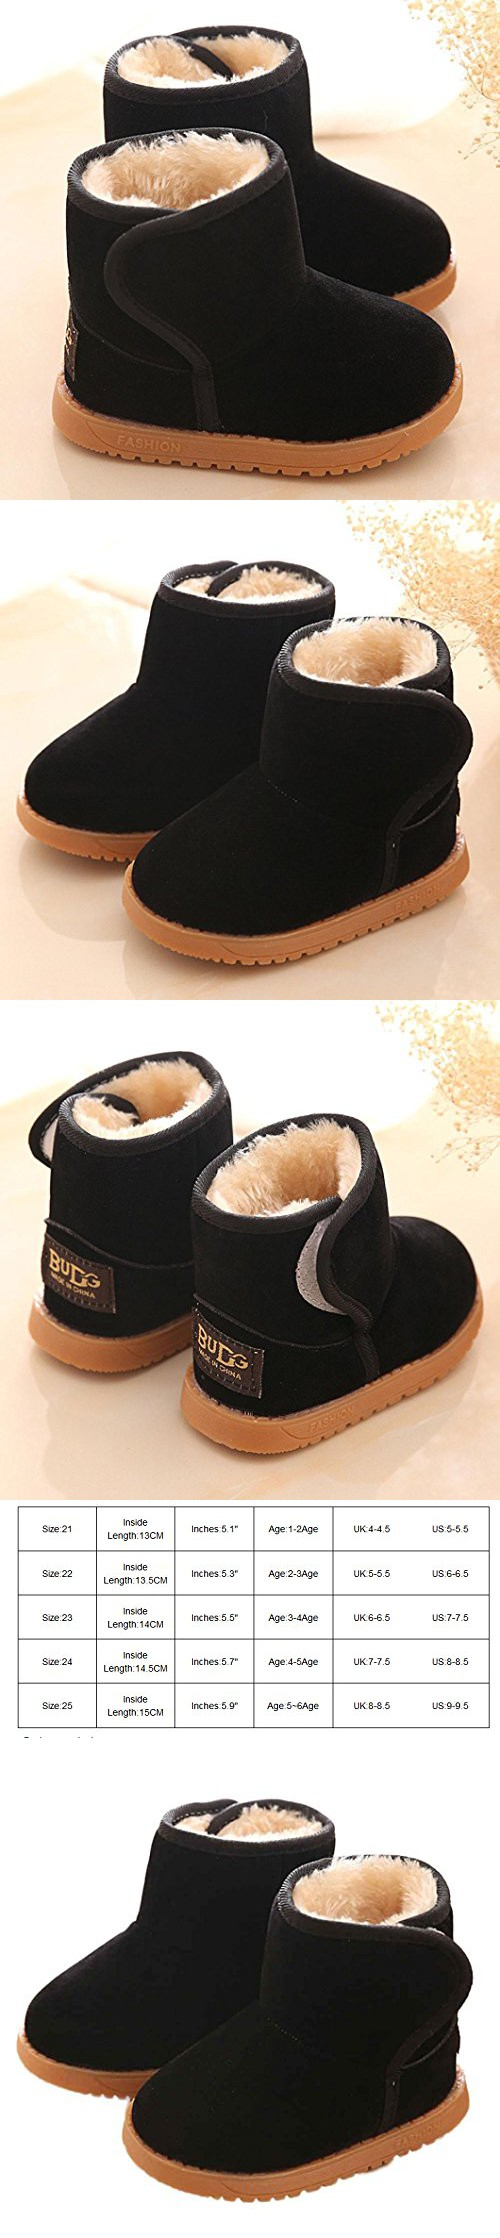 f936381fed06 Voberry Baby Toddler Kids Children Girls Boys Winter Warm Boot Fur Lined  Outdoor Snow Boots (1-2Age